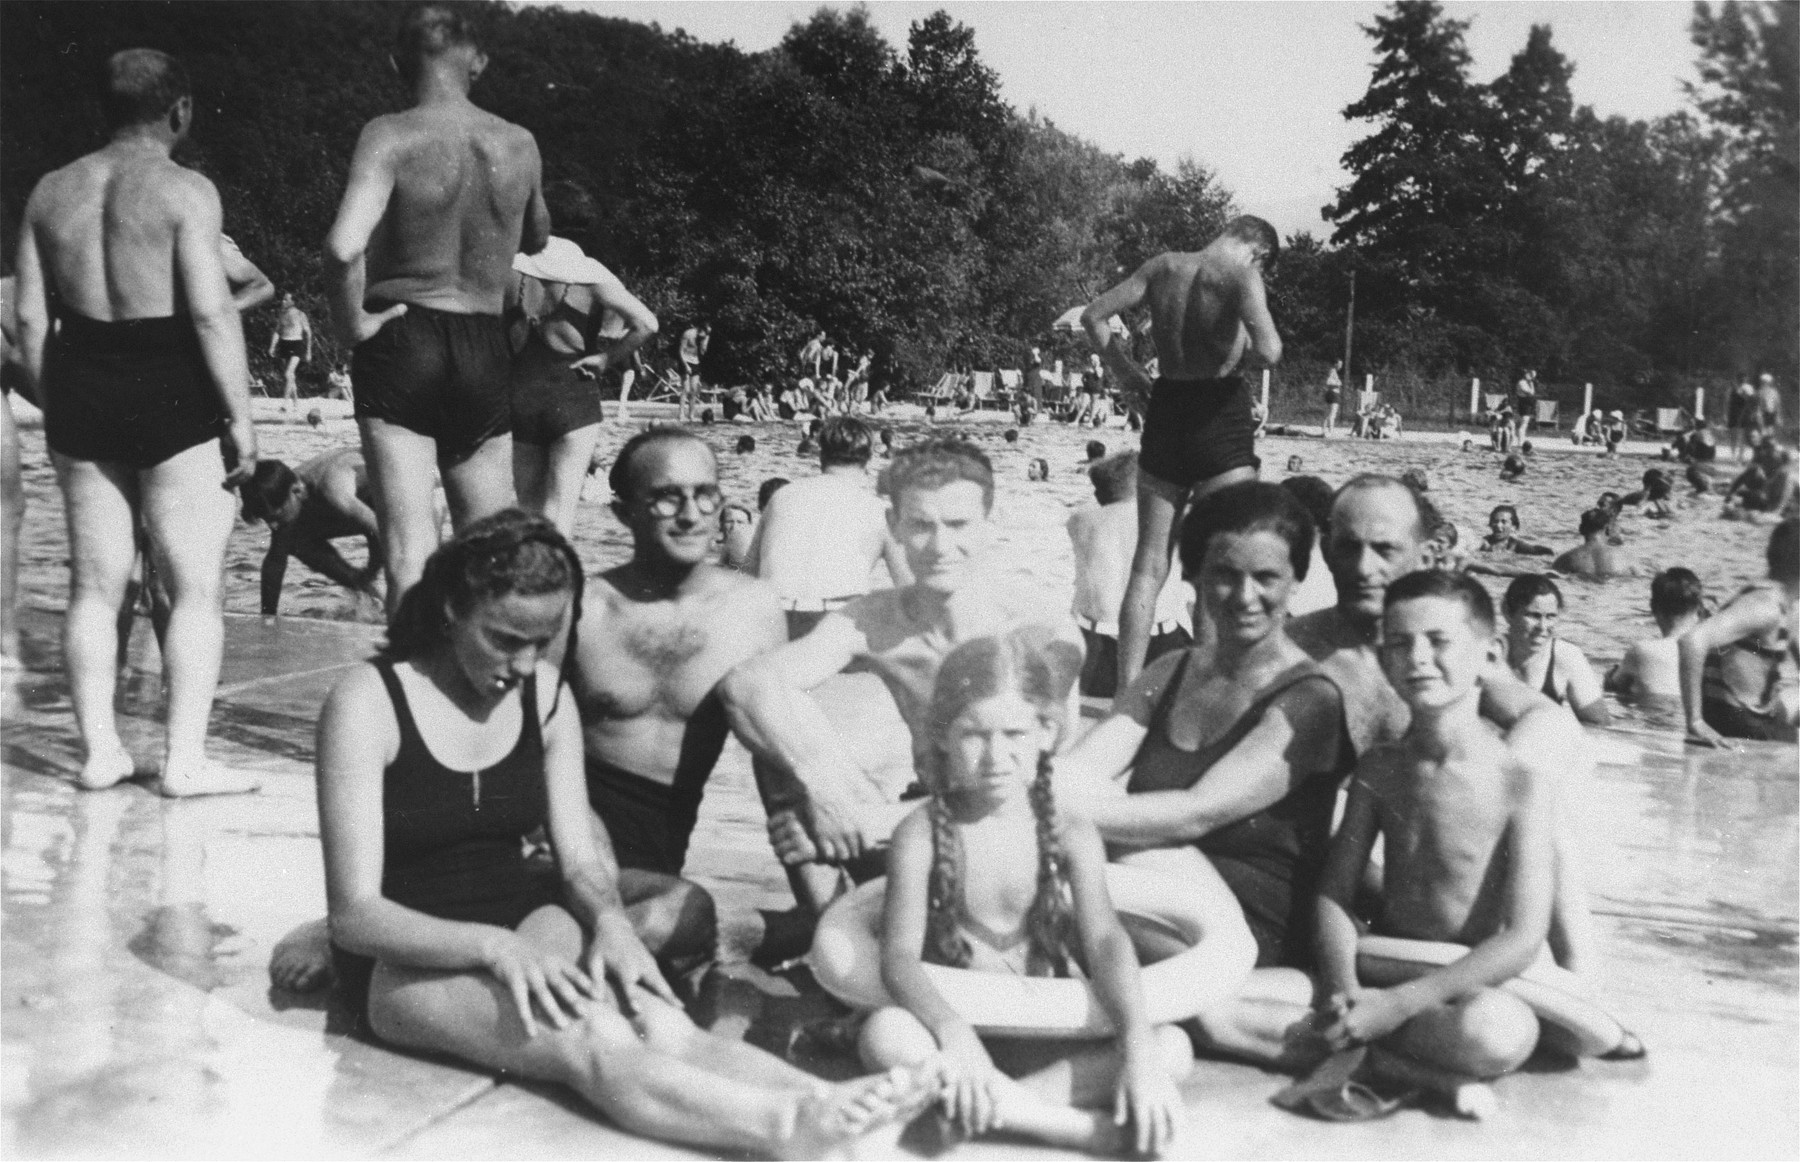 A Jewish family poses next to a swimming pool in Zagreb, Croatia.  Among those pictured are Marta and Aurel Kupfermann (the two children) and their mother, Blanka (next to Aurel).